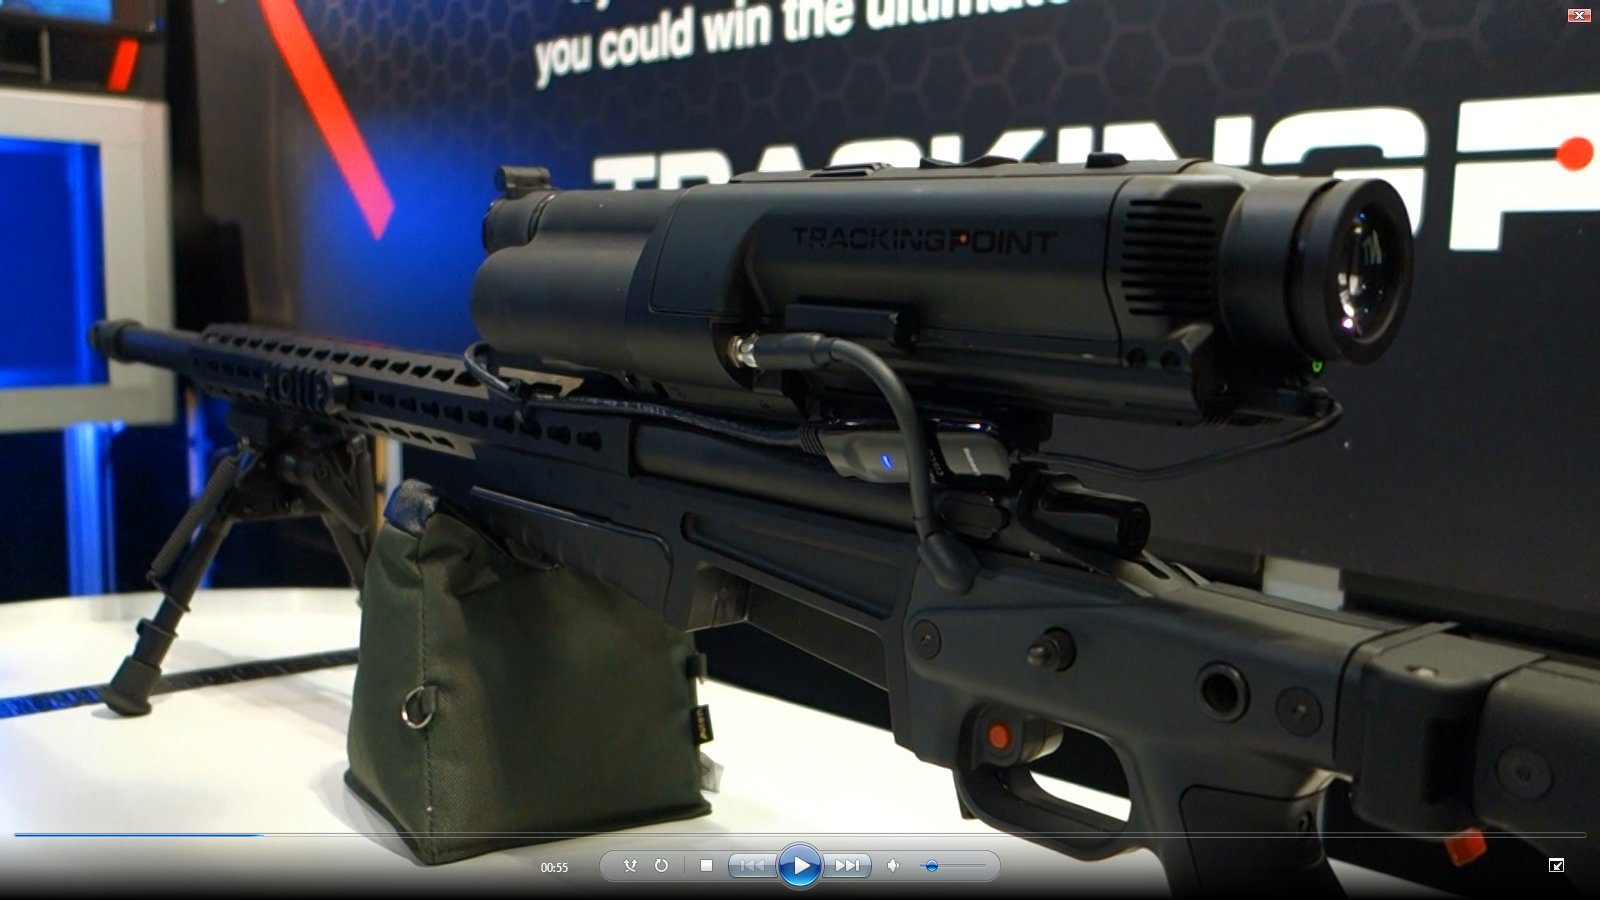 TrackingPoint XactSystem Precision Guided Firearm PGF Integrated Networked Tracking Scope Exhibit Floor SHOT Show 2013 David Crane DefenseReview.com DR 5 McMillan/TrackingPoint .50 BMG Precision Guided Rifle (PGR): Meet the Future 3,100 Yard Super Gun Sniper Rifle with XactSystem Smart Rifle Scope Technology